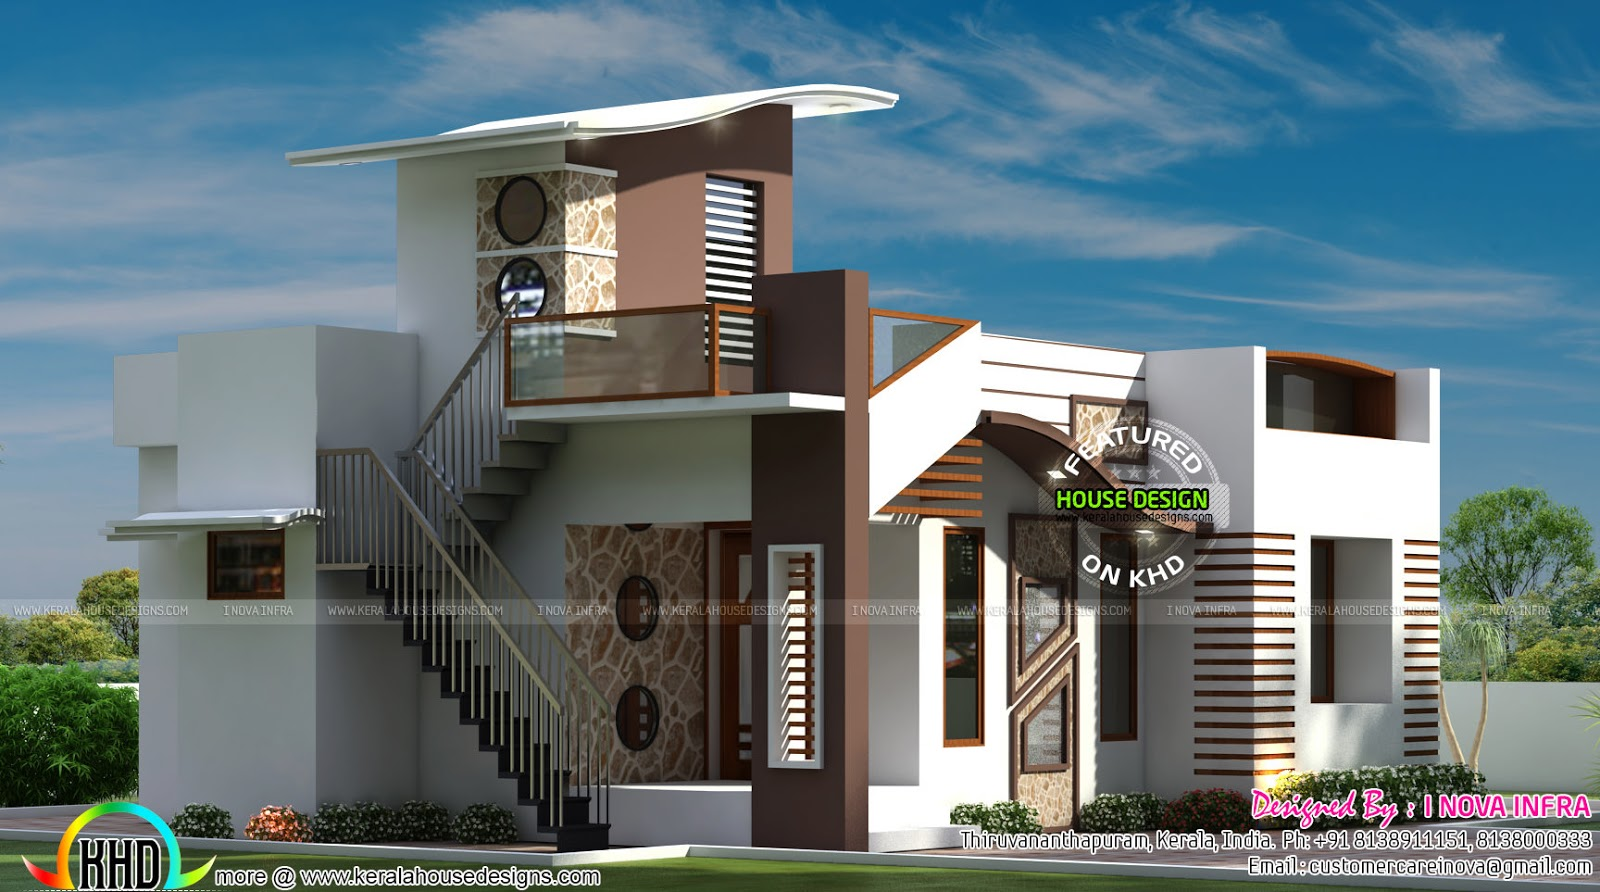 800 Sq Ft Budget Contemporary House Kerala Home Design: modern square house